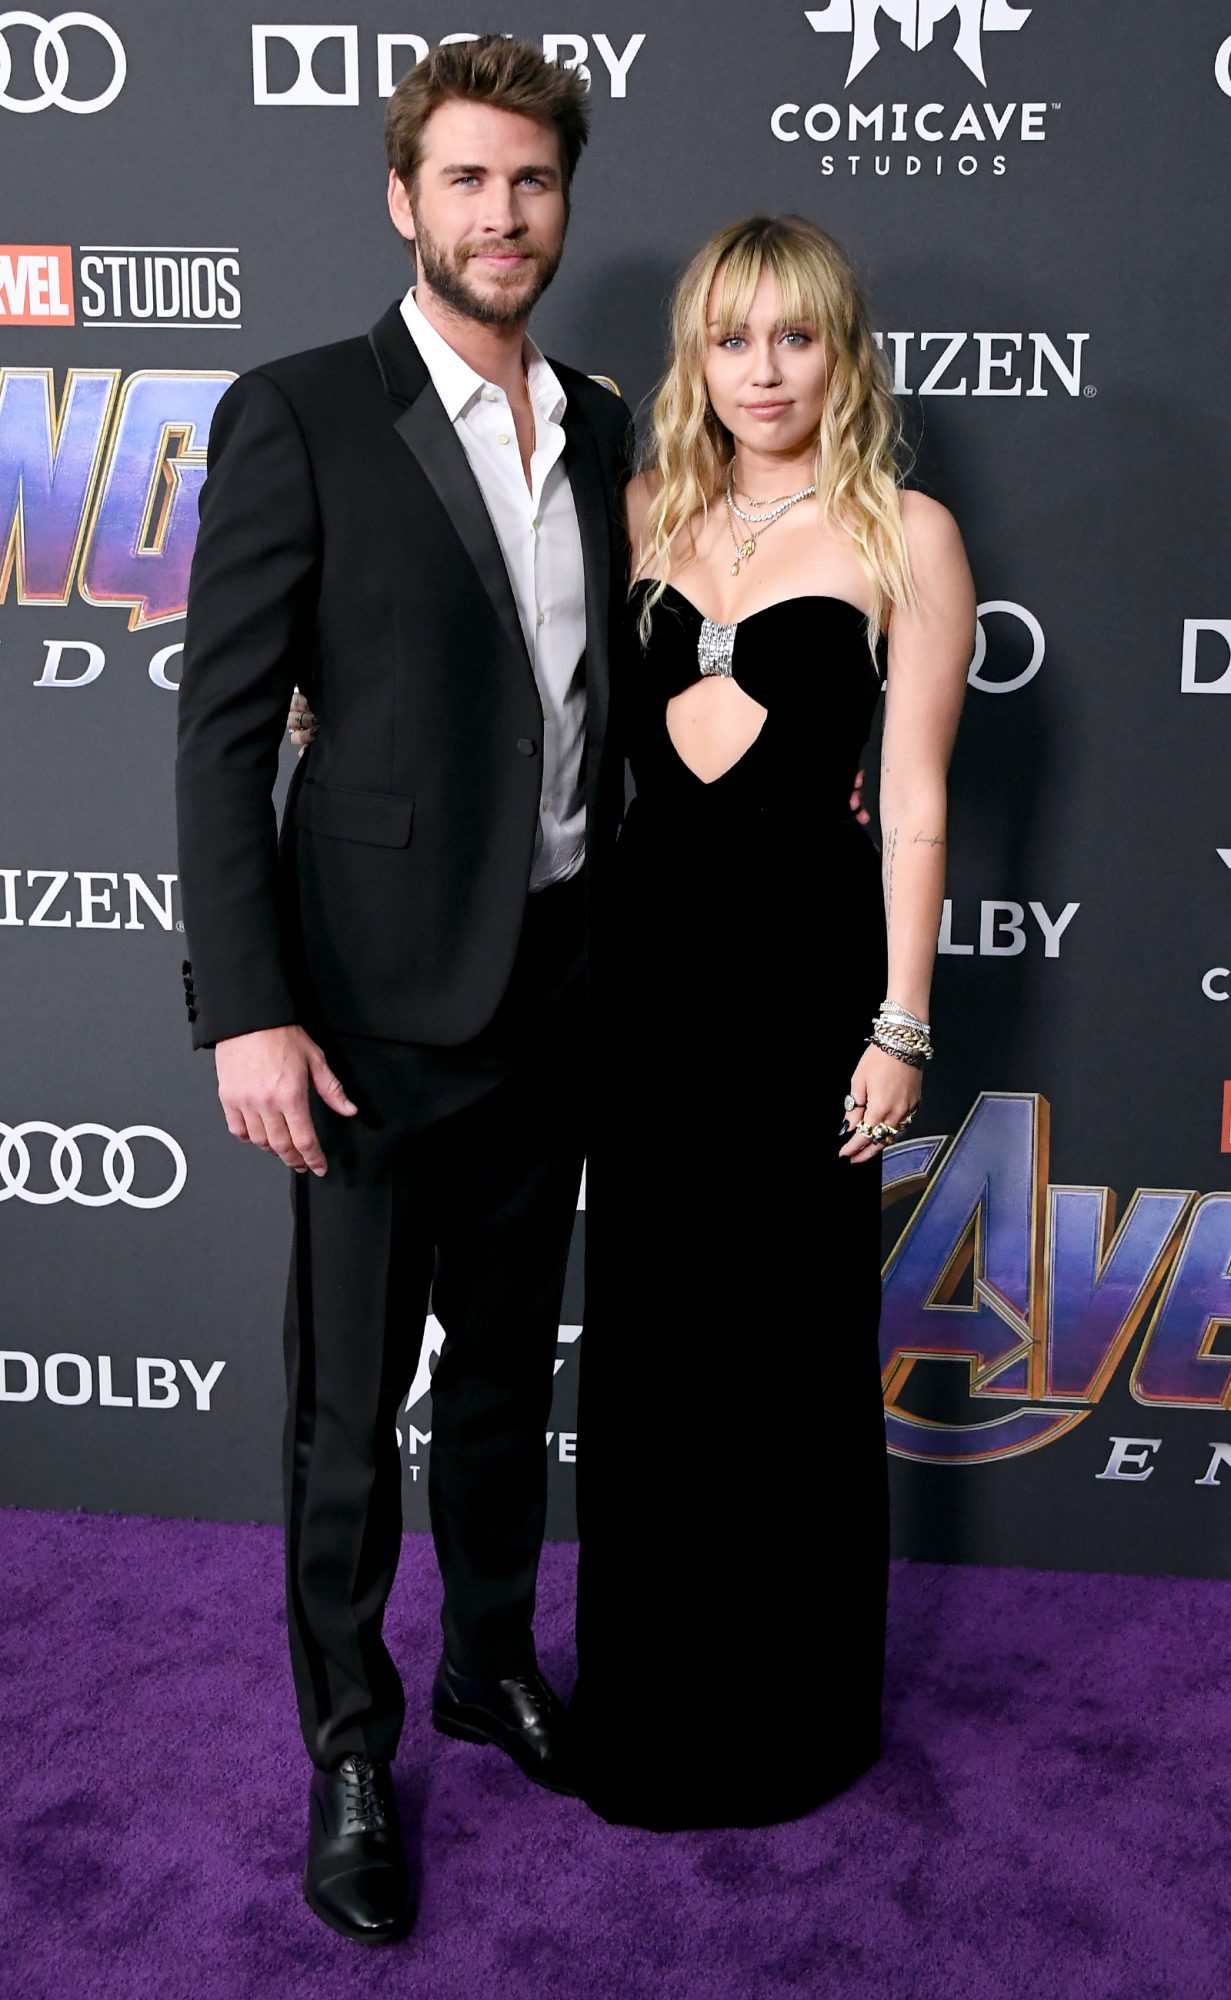 """LOS ANGELES, CA - APRIL 22: Liam Hemsworth (L) and Miley Cyrus attend the world premiere of Walt Disney Studios Motion Pictures """"Avengers: Endgame"""" at the Los Angeles Convention Center on April 22, 2019 in Los Angeles, California. (Photo by Steve Granitz/WireImage)"""